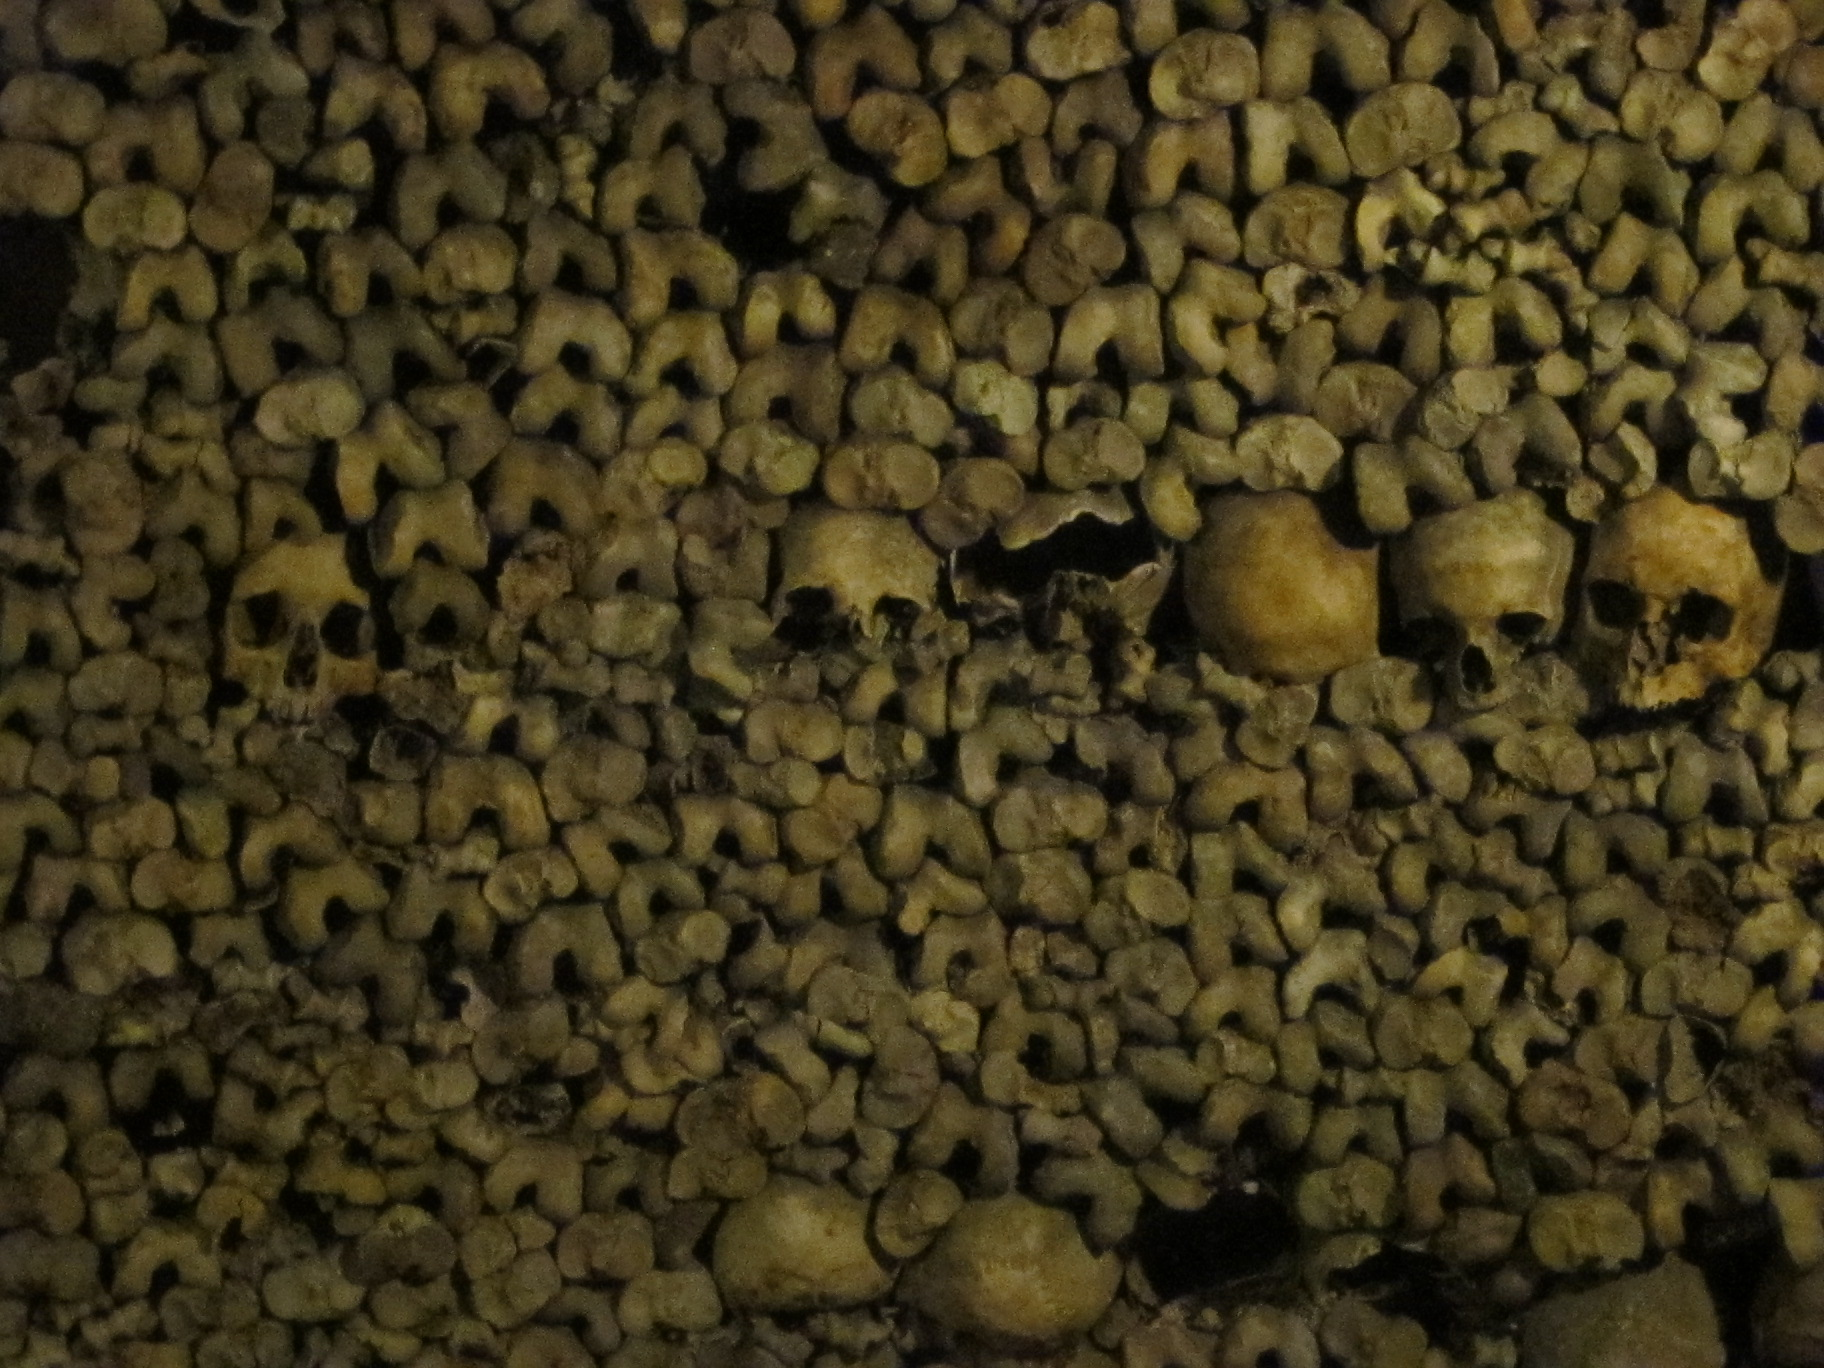 Remains - catacombs photo